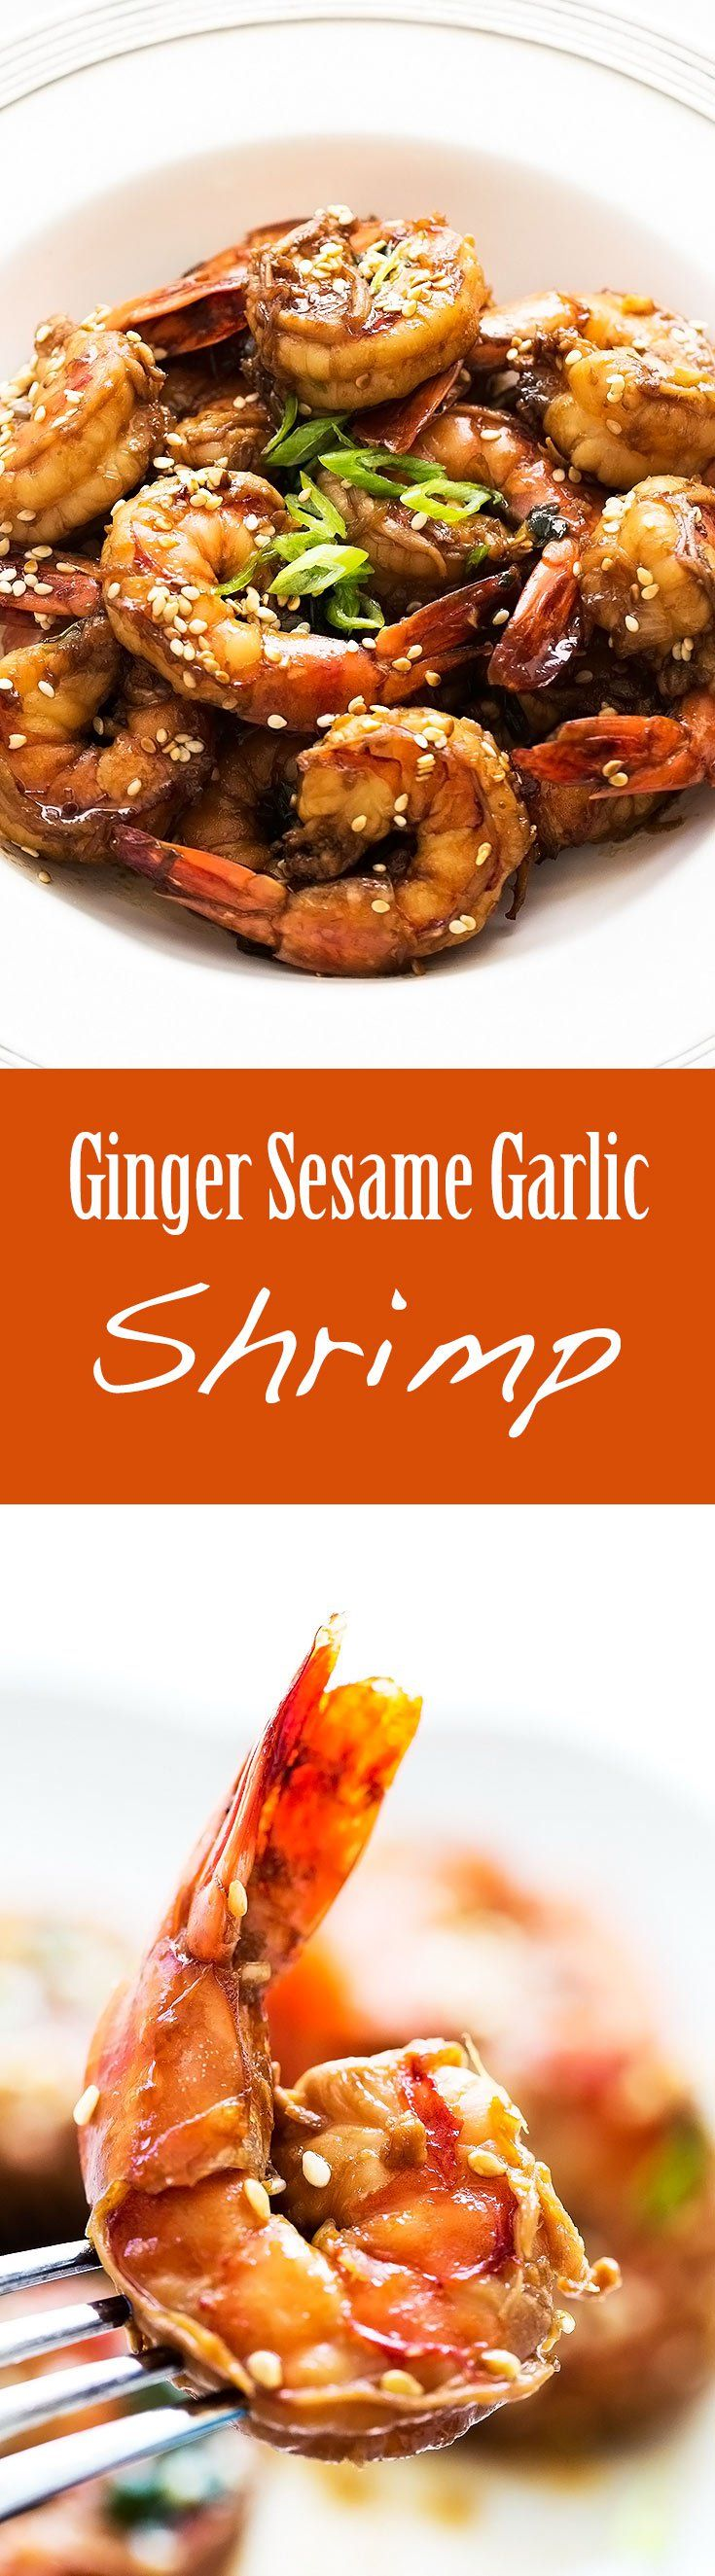 #ChineseNewYear Quick and easy! Shrimp marinated in a ginger sesame garlic soy sauce marinade, then quickly stir-fried. Easy prep, 10 minute cook time! On SimplyRecipes.com